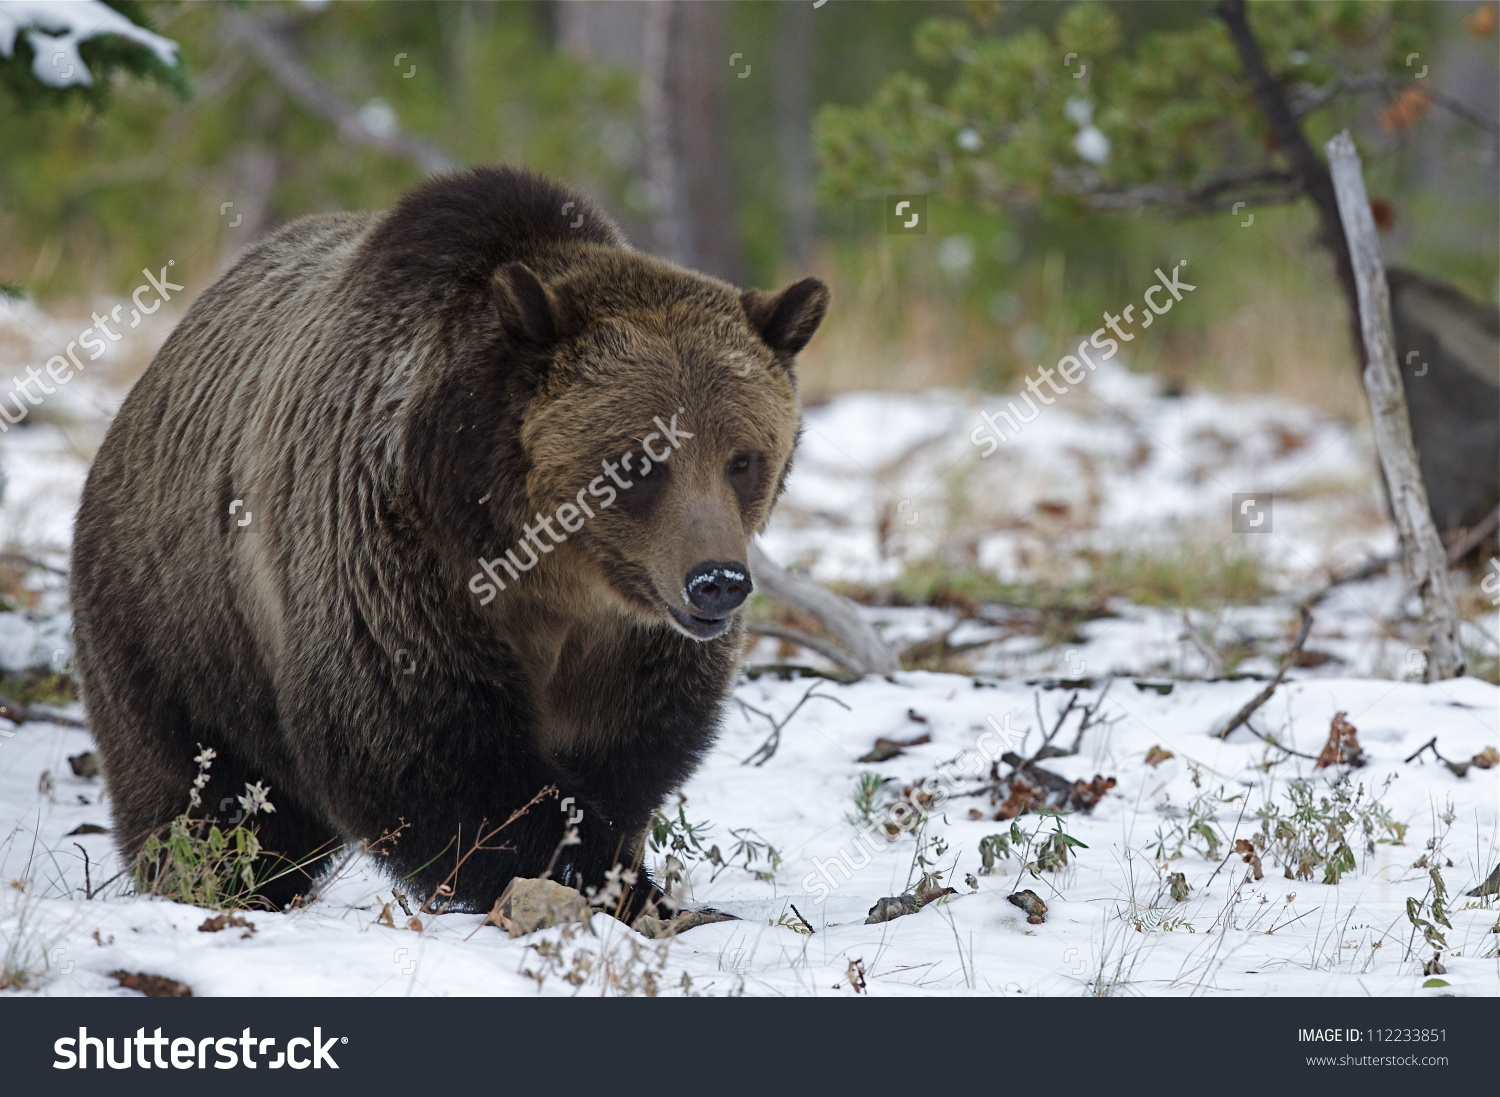 Large Grizzly Bear In Snow, Just Prior To Hibernating; Mount.